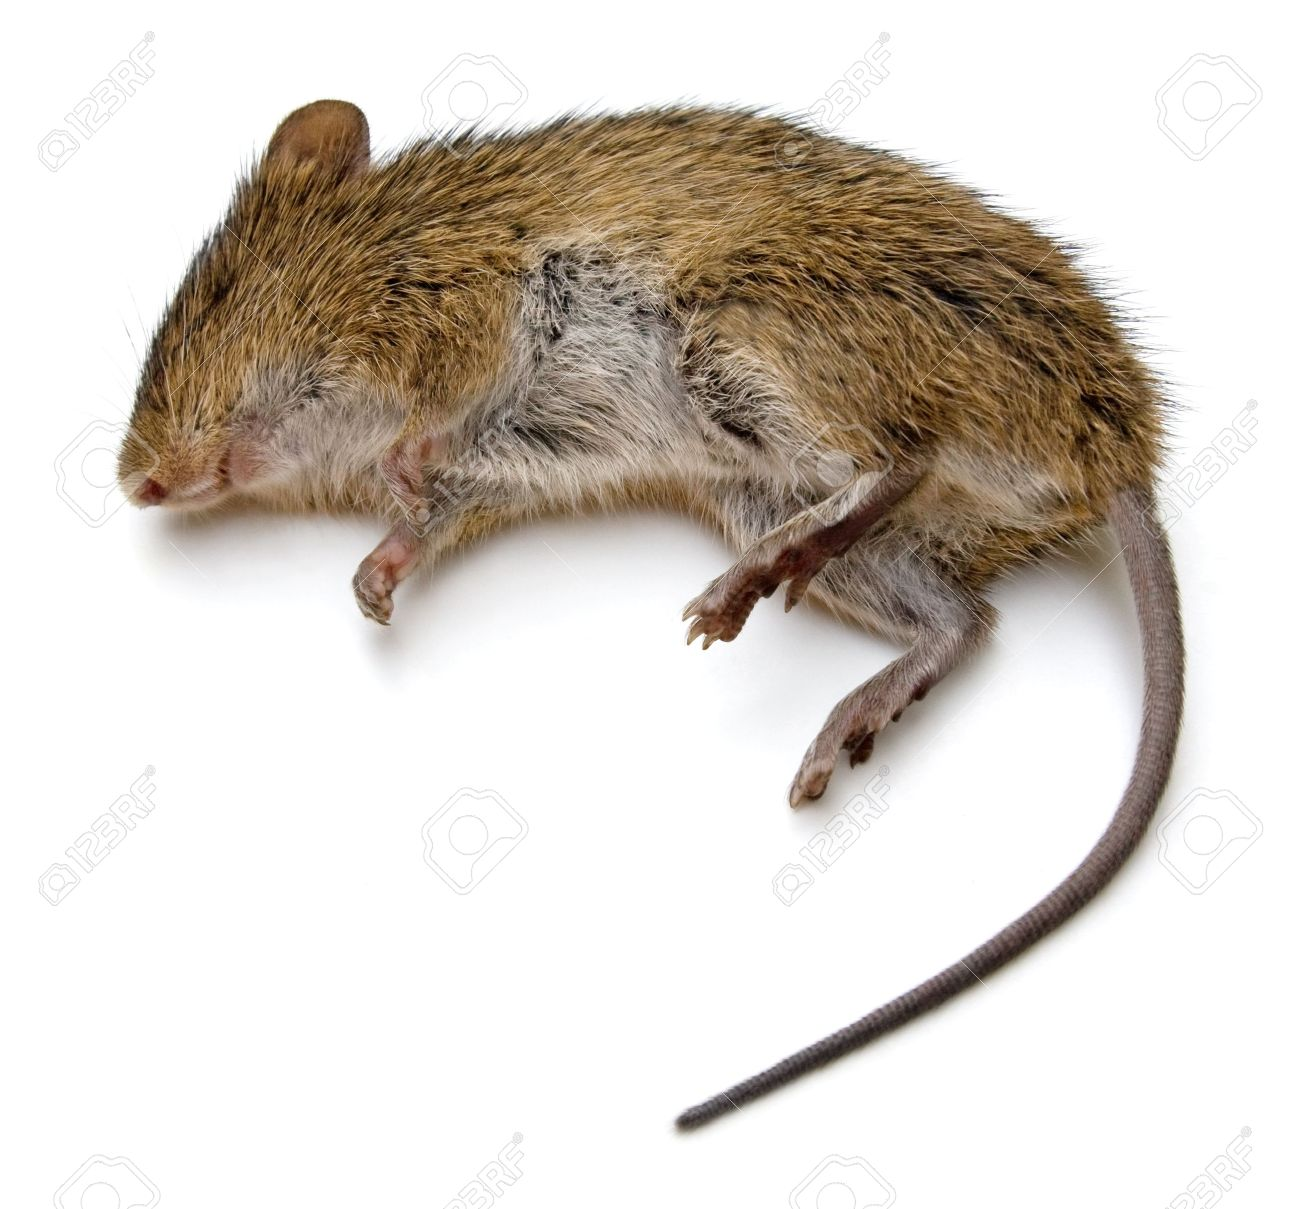 Dead rat isolated on a white background. Stock Photo - 7276931